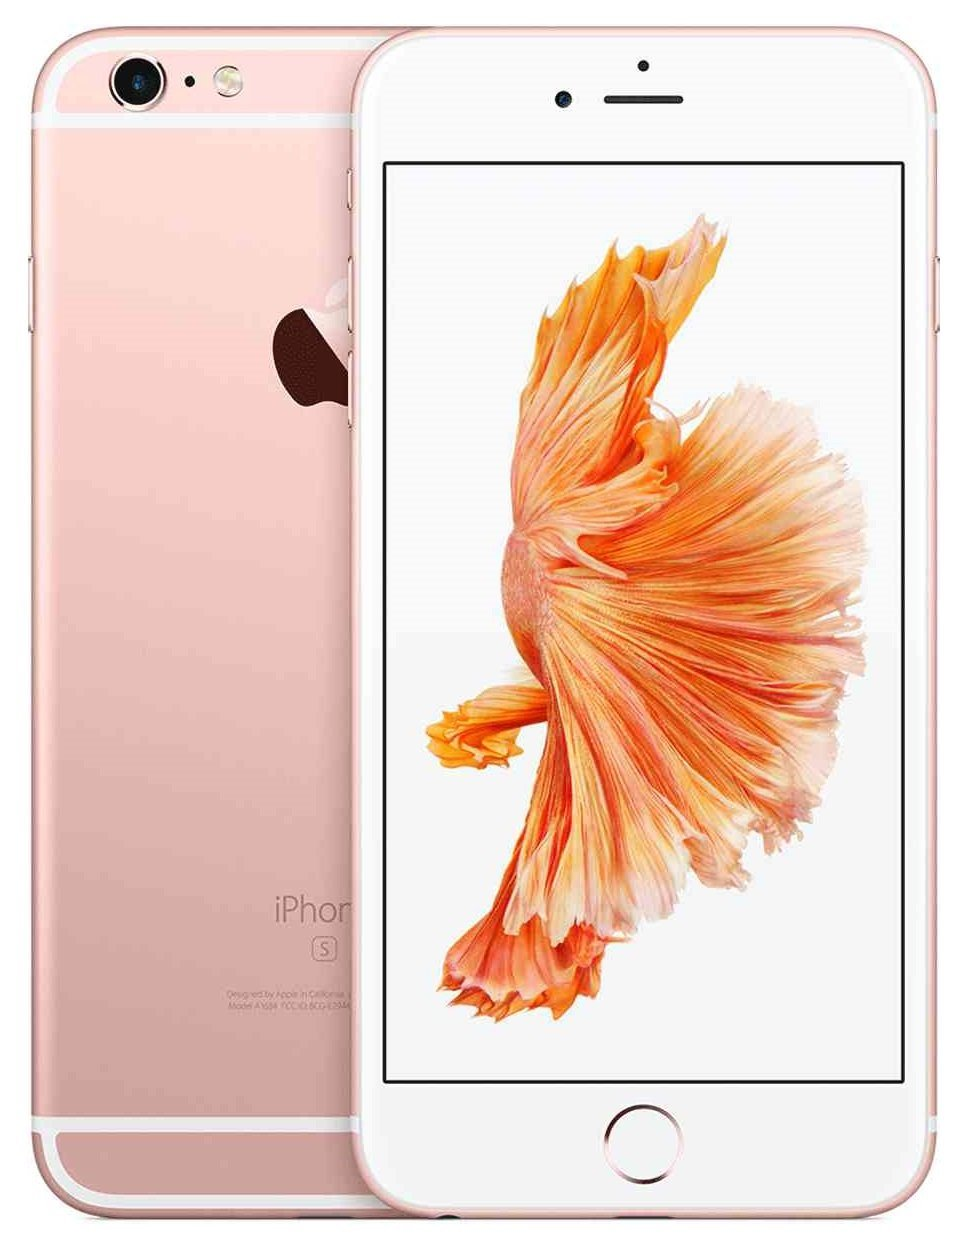 Apple Iphone 6s 16gb Rose Gold For At T T Mobile Renewed